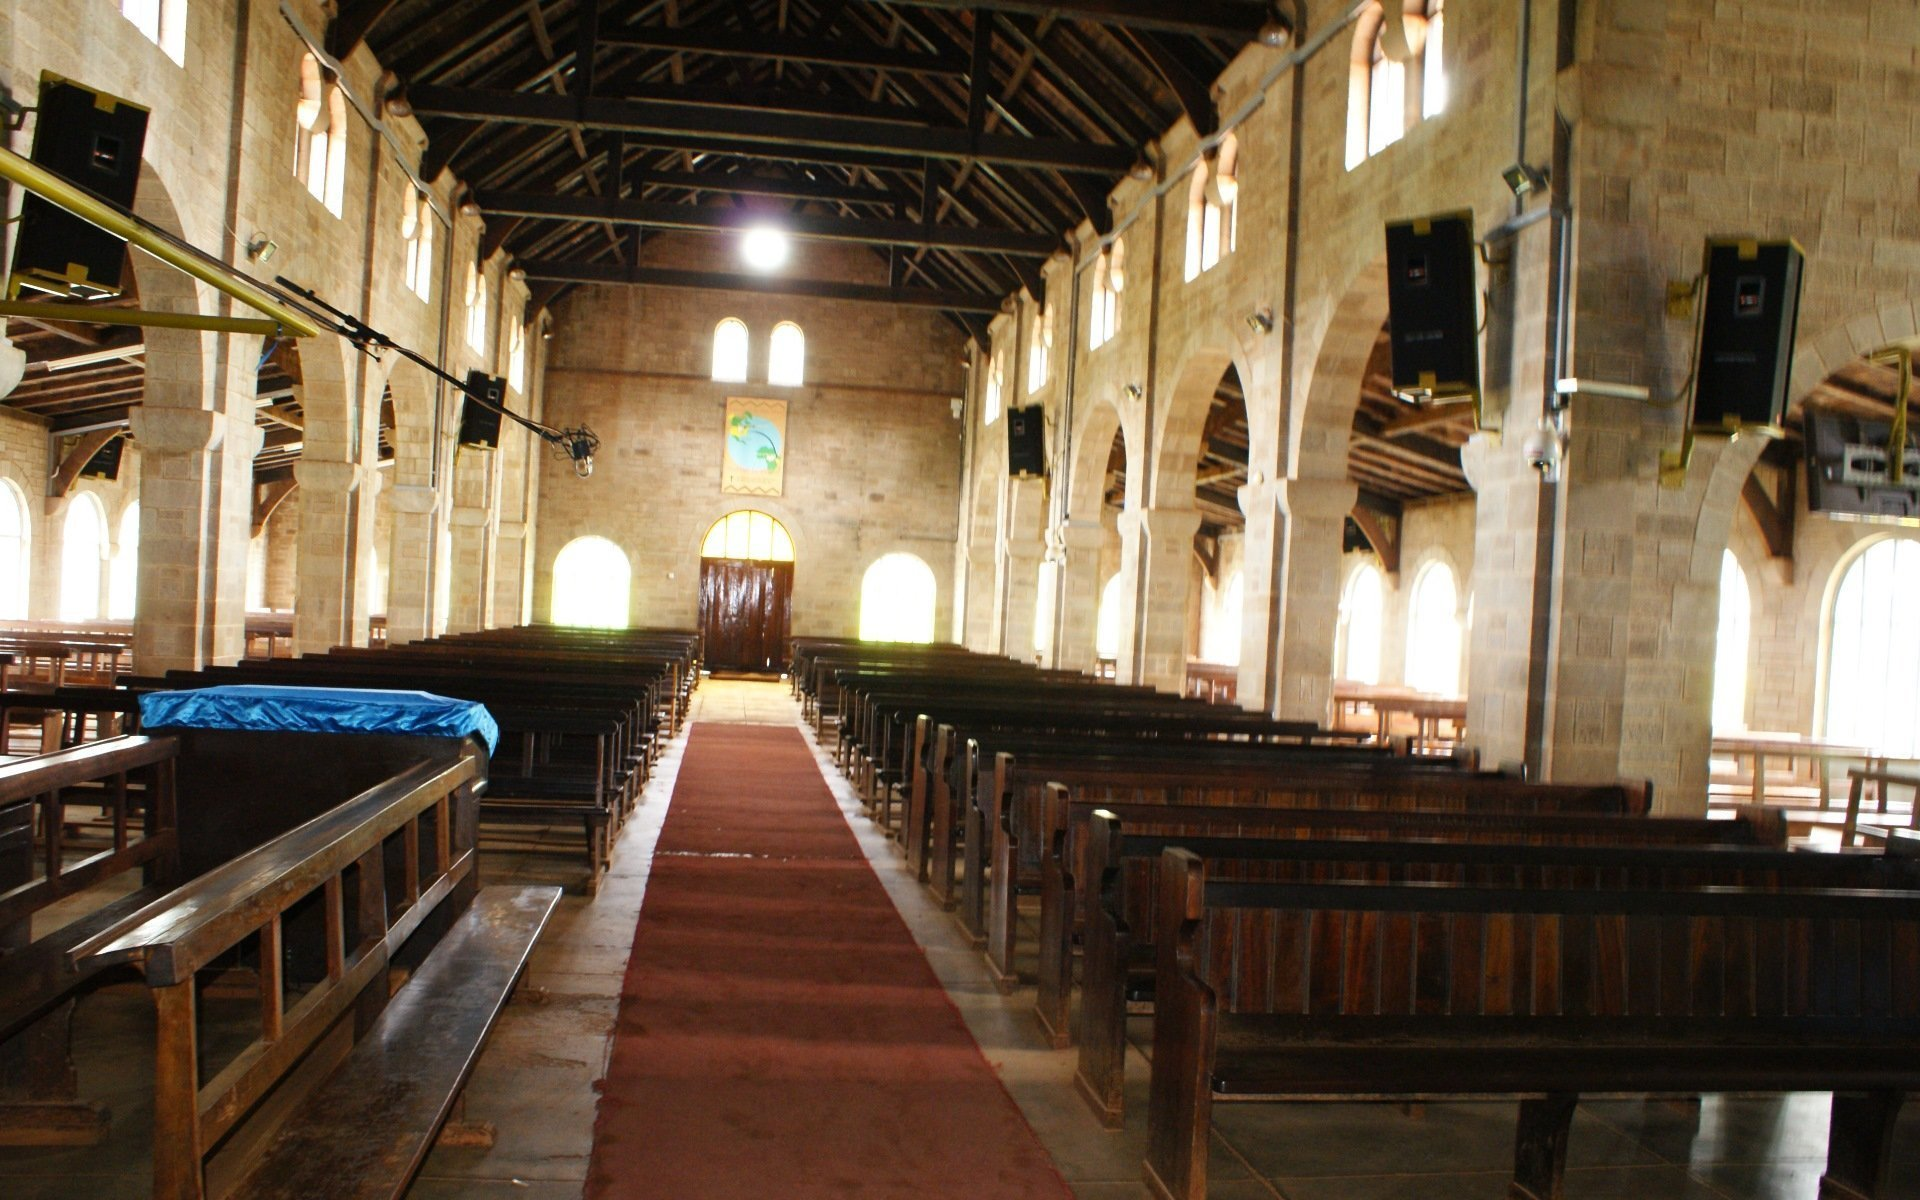 Laid out in a traditional cruciform shape with a triple aisle nave, transept and apse, the Church of the Torch rivals many modern buildings in grandeur and precision.